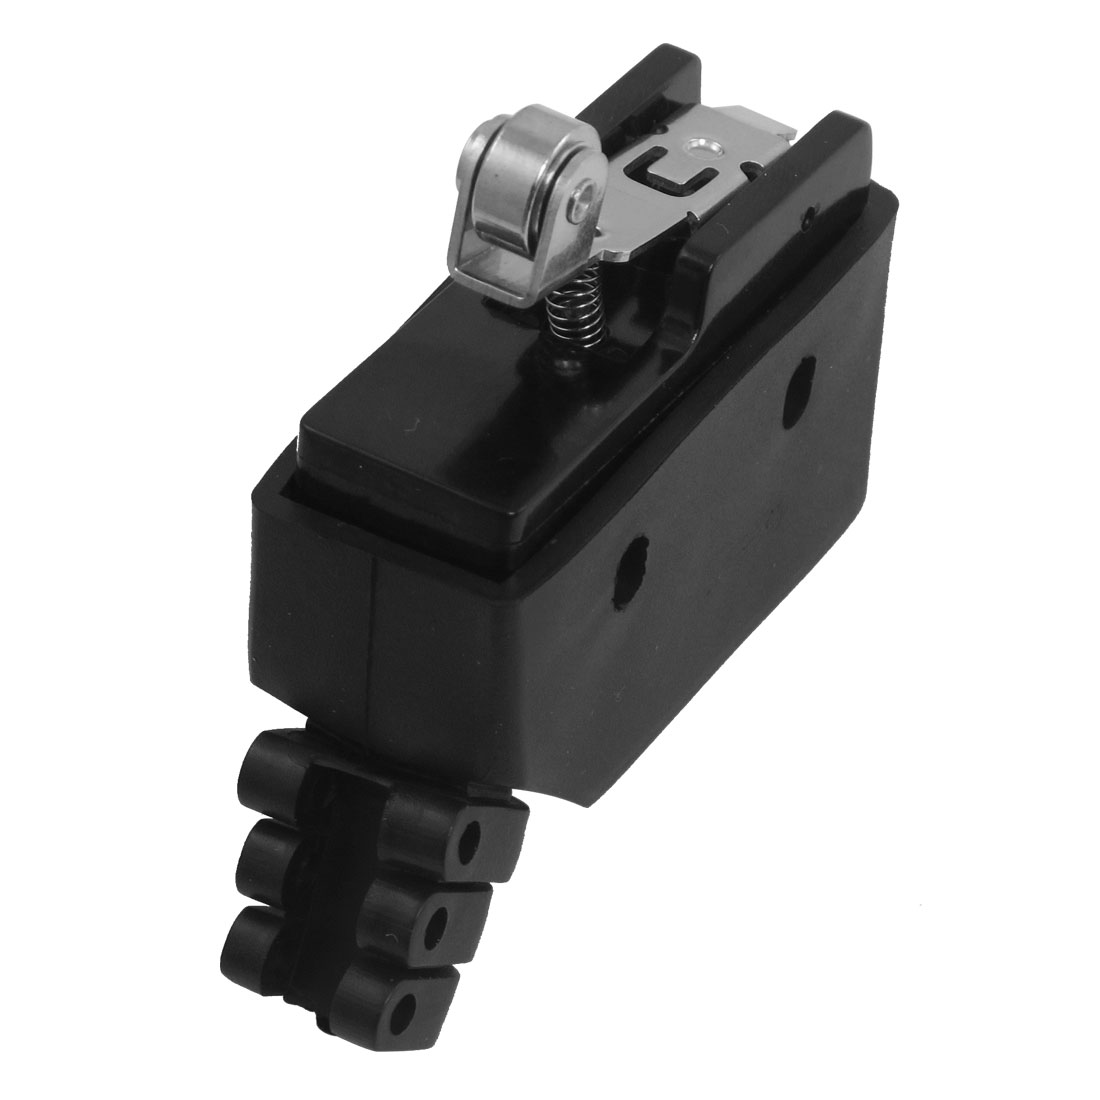 TM-1704 Short Roller Hinge Lever Momentary Limit Micro Switch 380V 15A w Cover